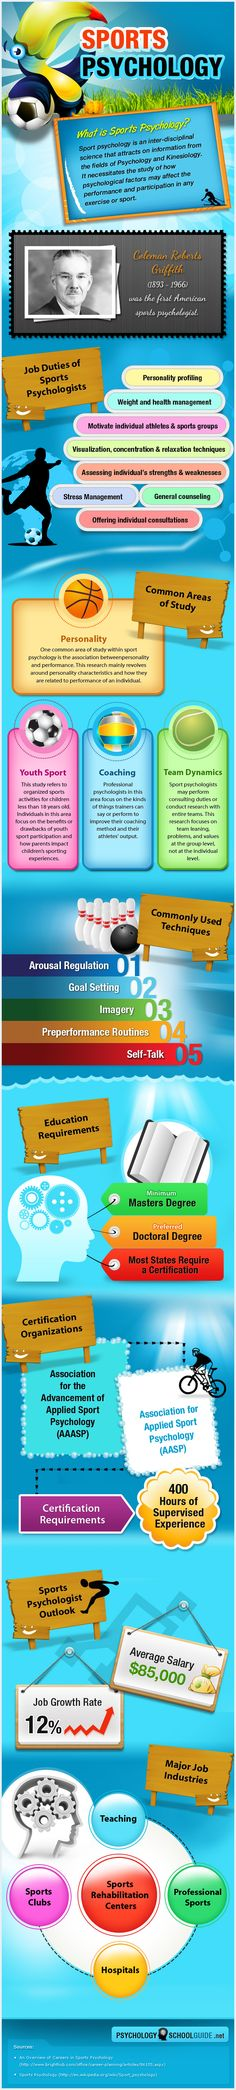 INFOGRAPHIC: Sports Psychology and Sports Psychologist Career